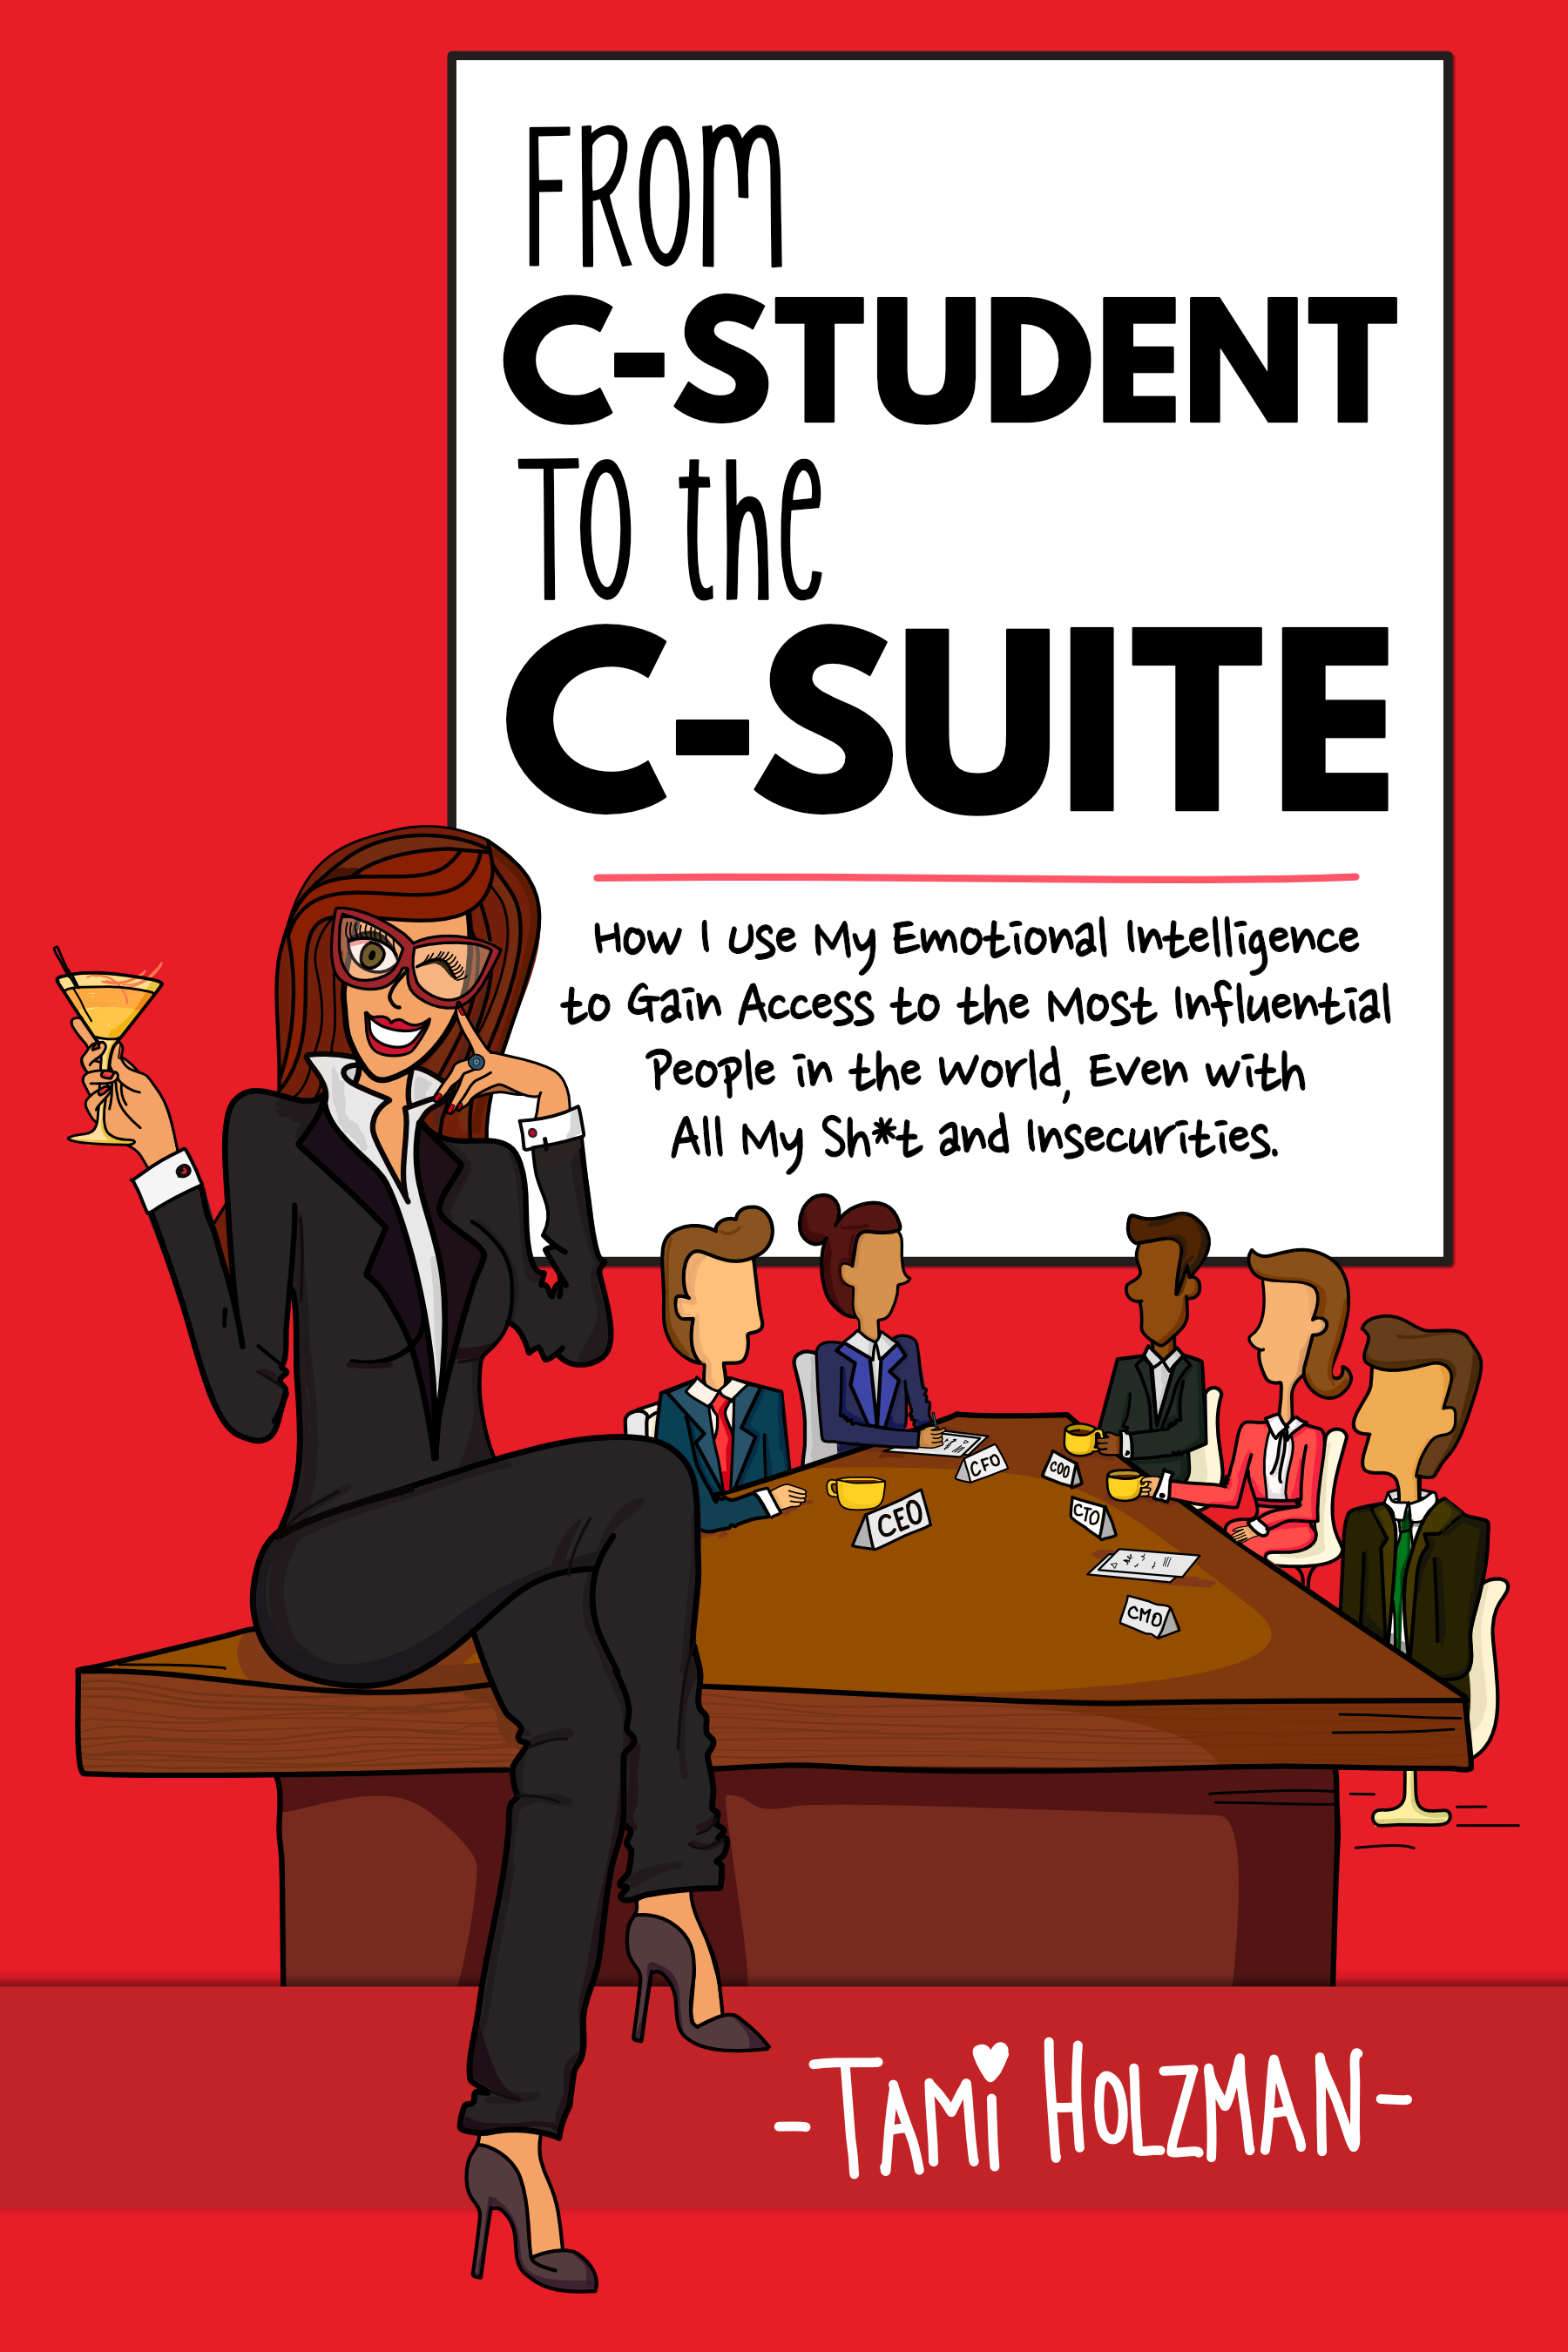 From C Student to C Suite